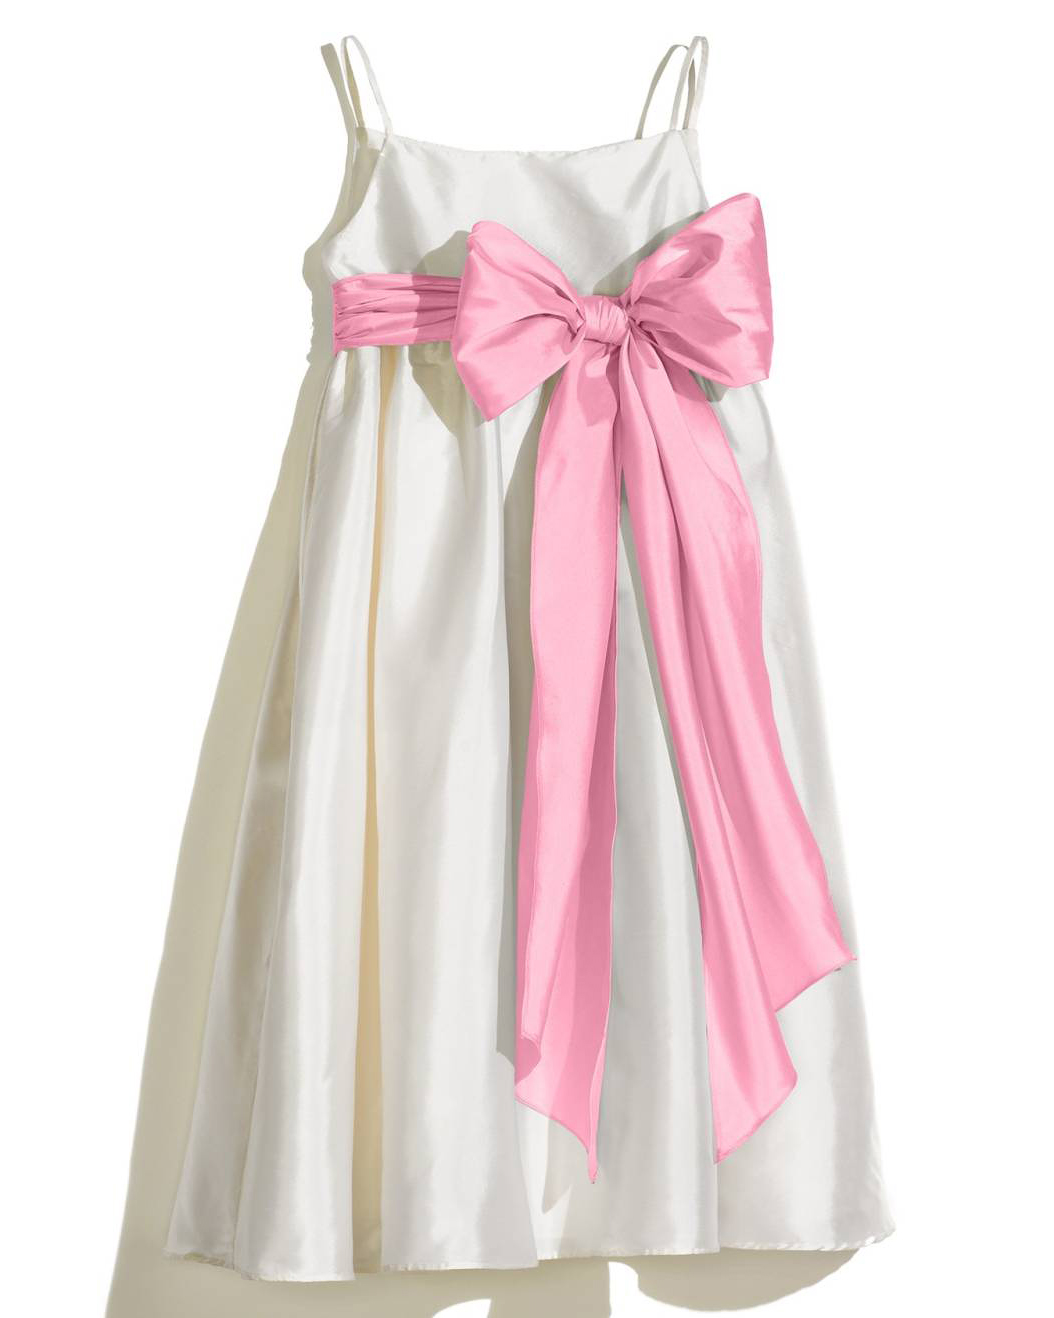 white flower girl dress pink bow